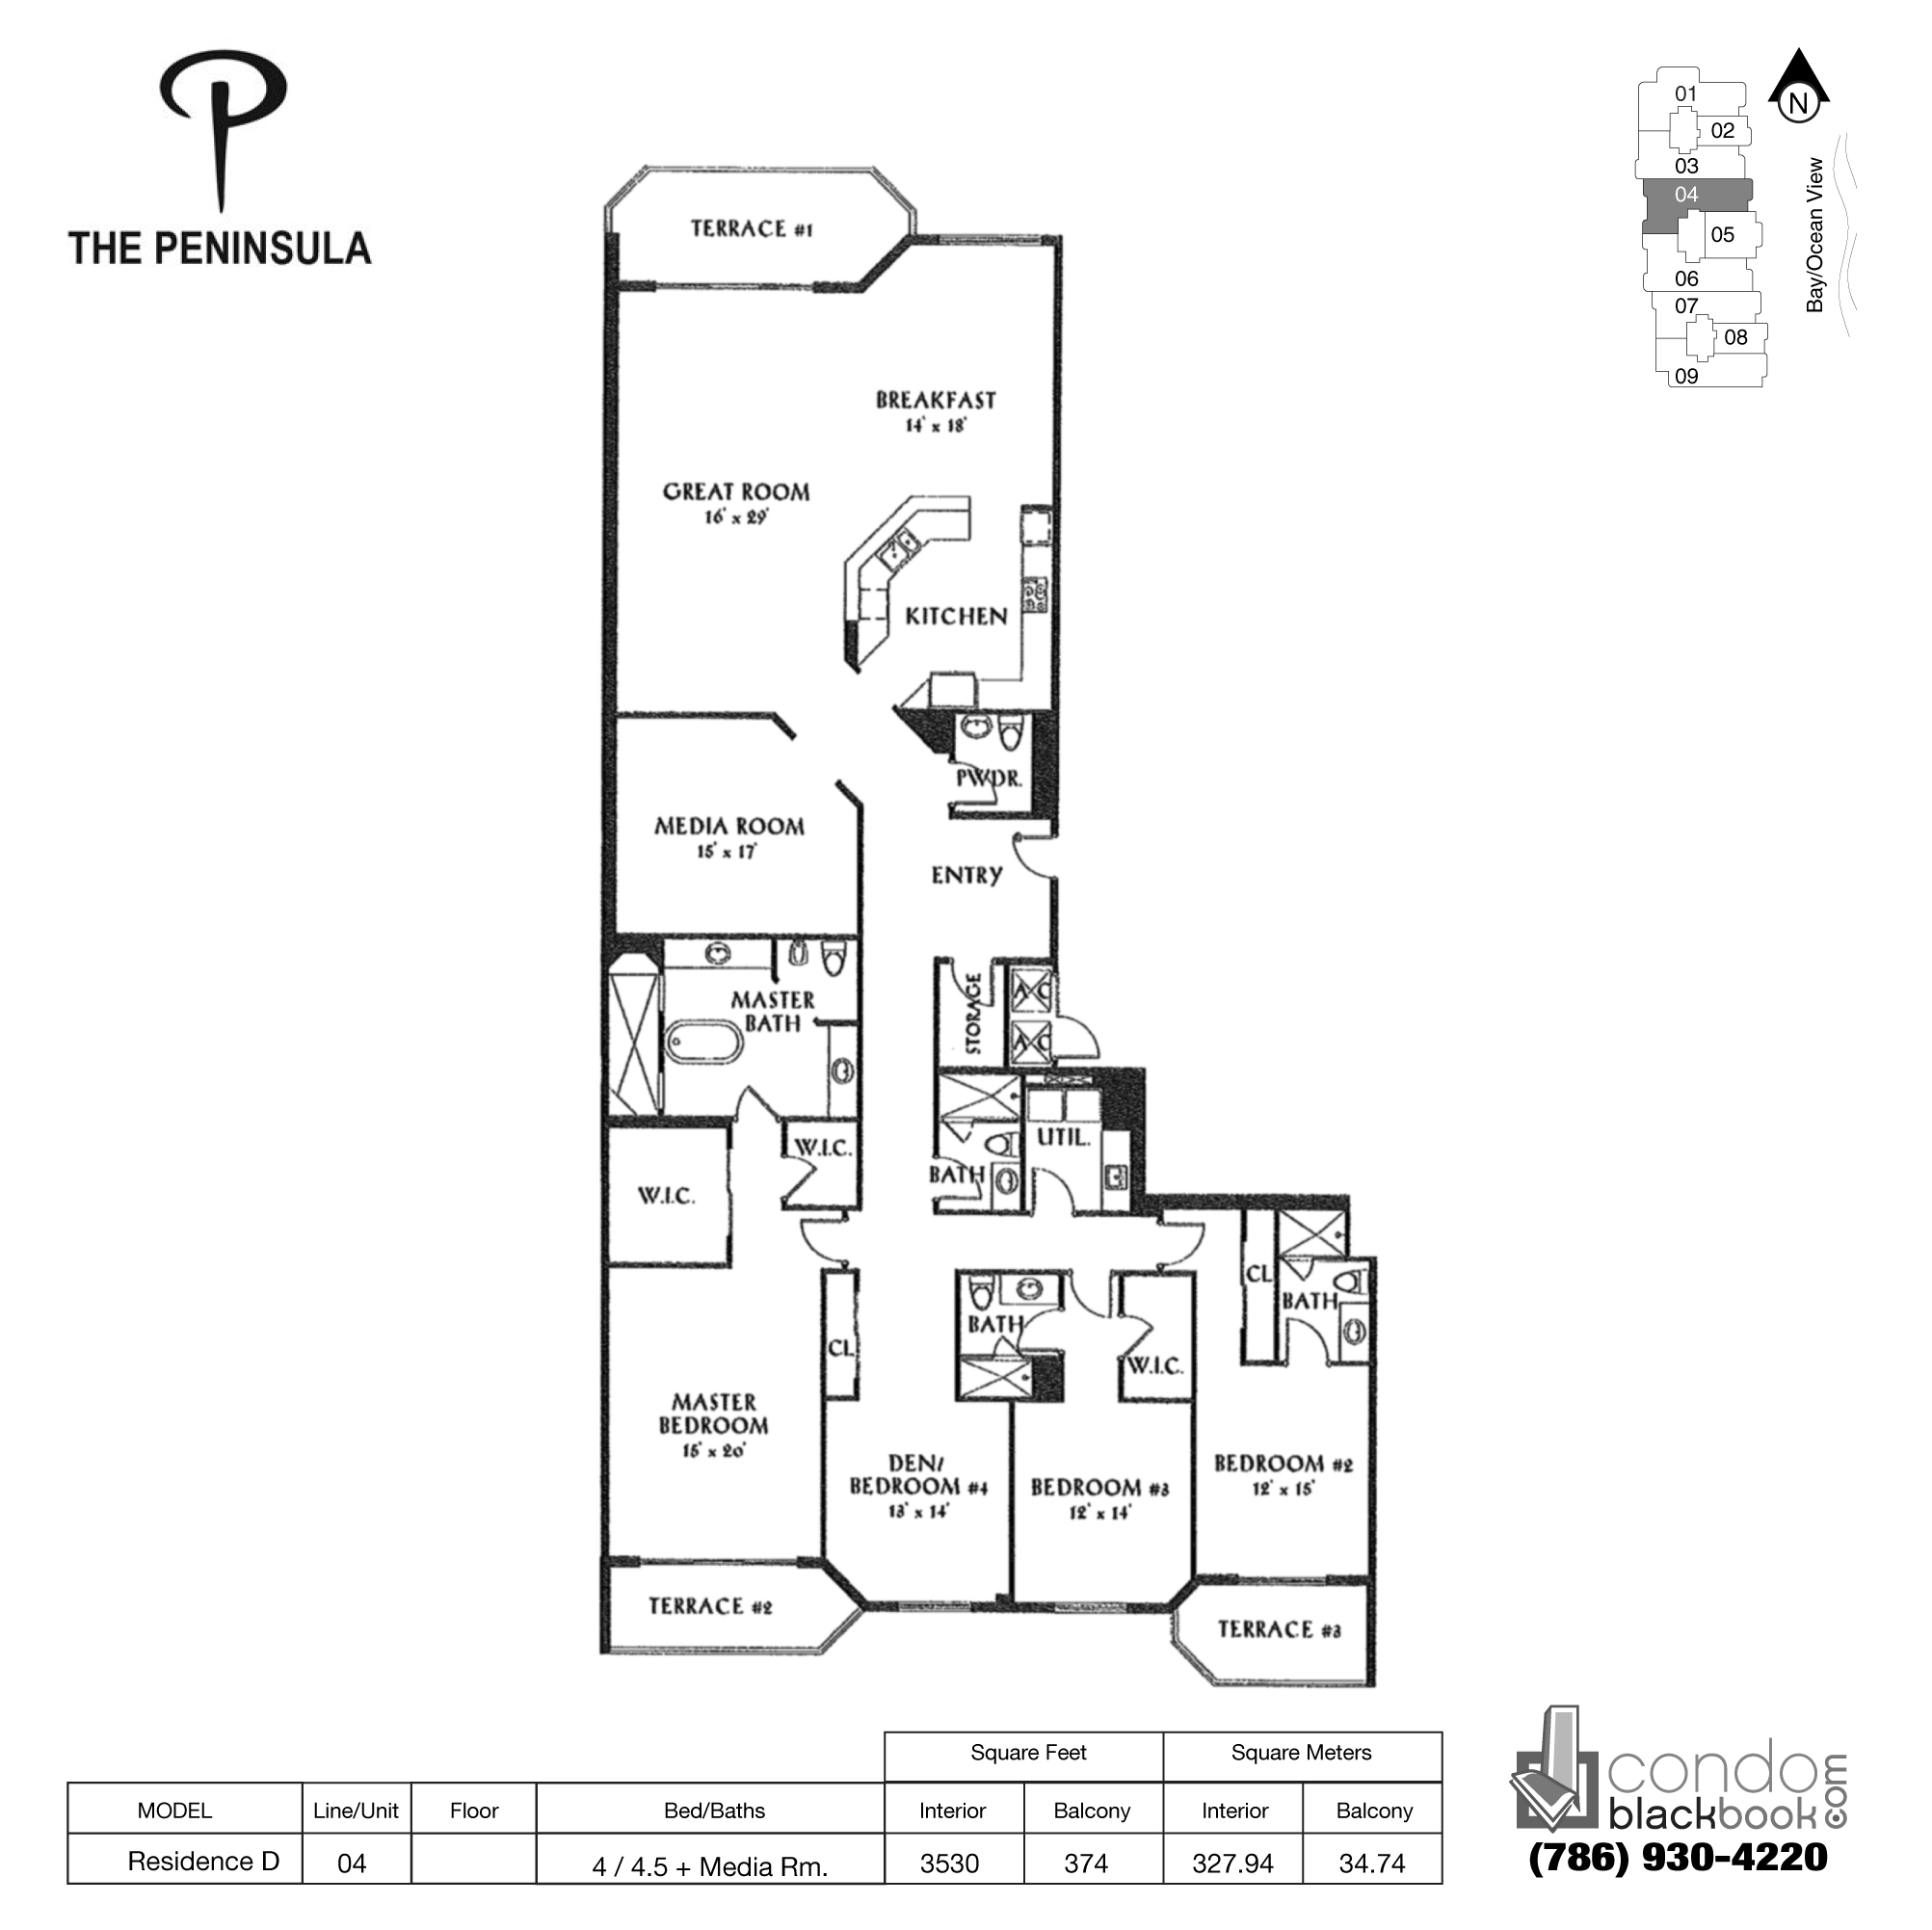 Floor plan for Peninsula II Aventura, model Res. D, line 04, 4 / 4.5 + Media Rooms bedrooms, 3530 sq ft